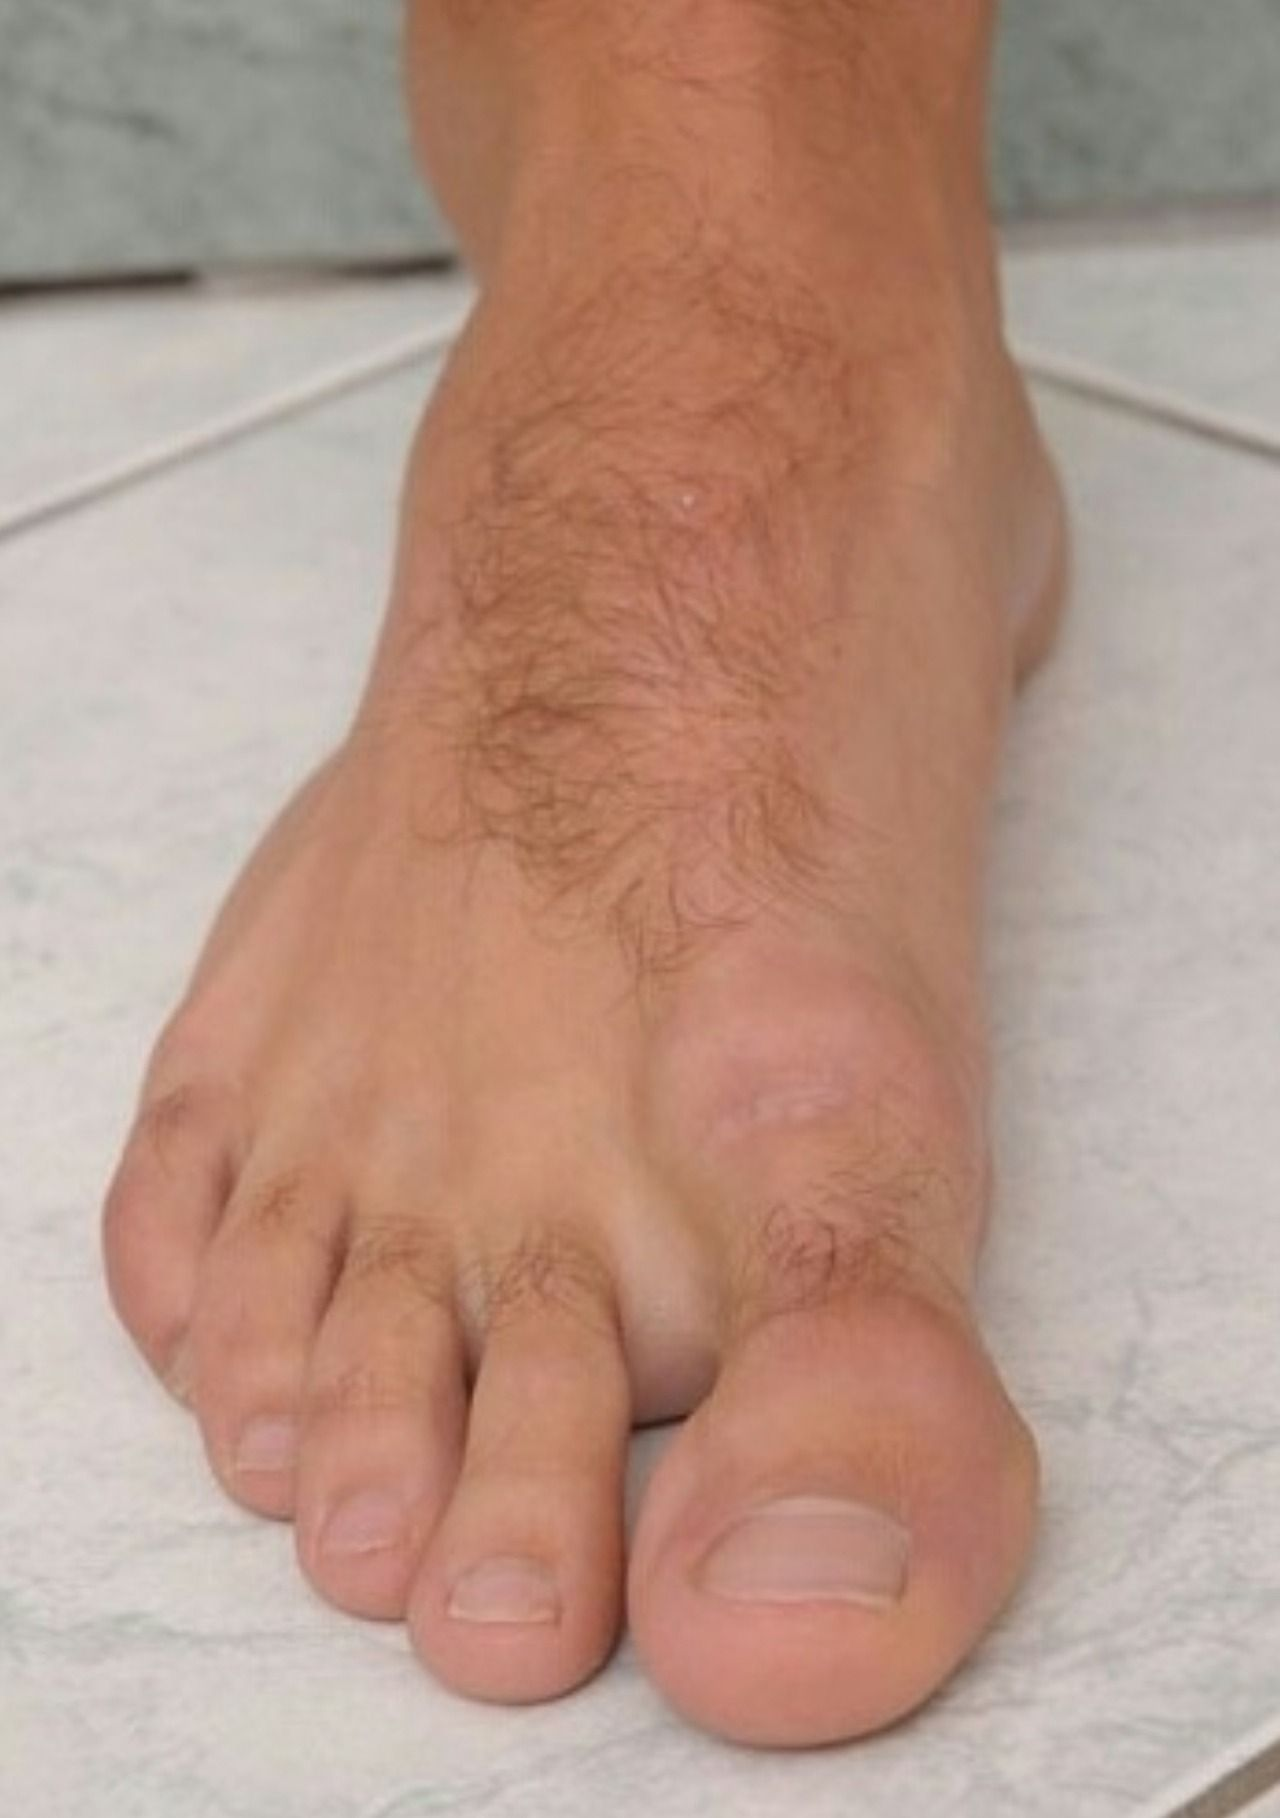 Pin On Bare Men S Feet